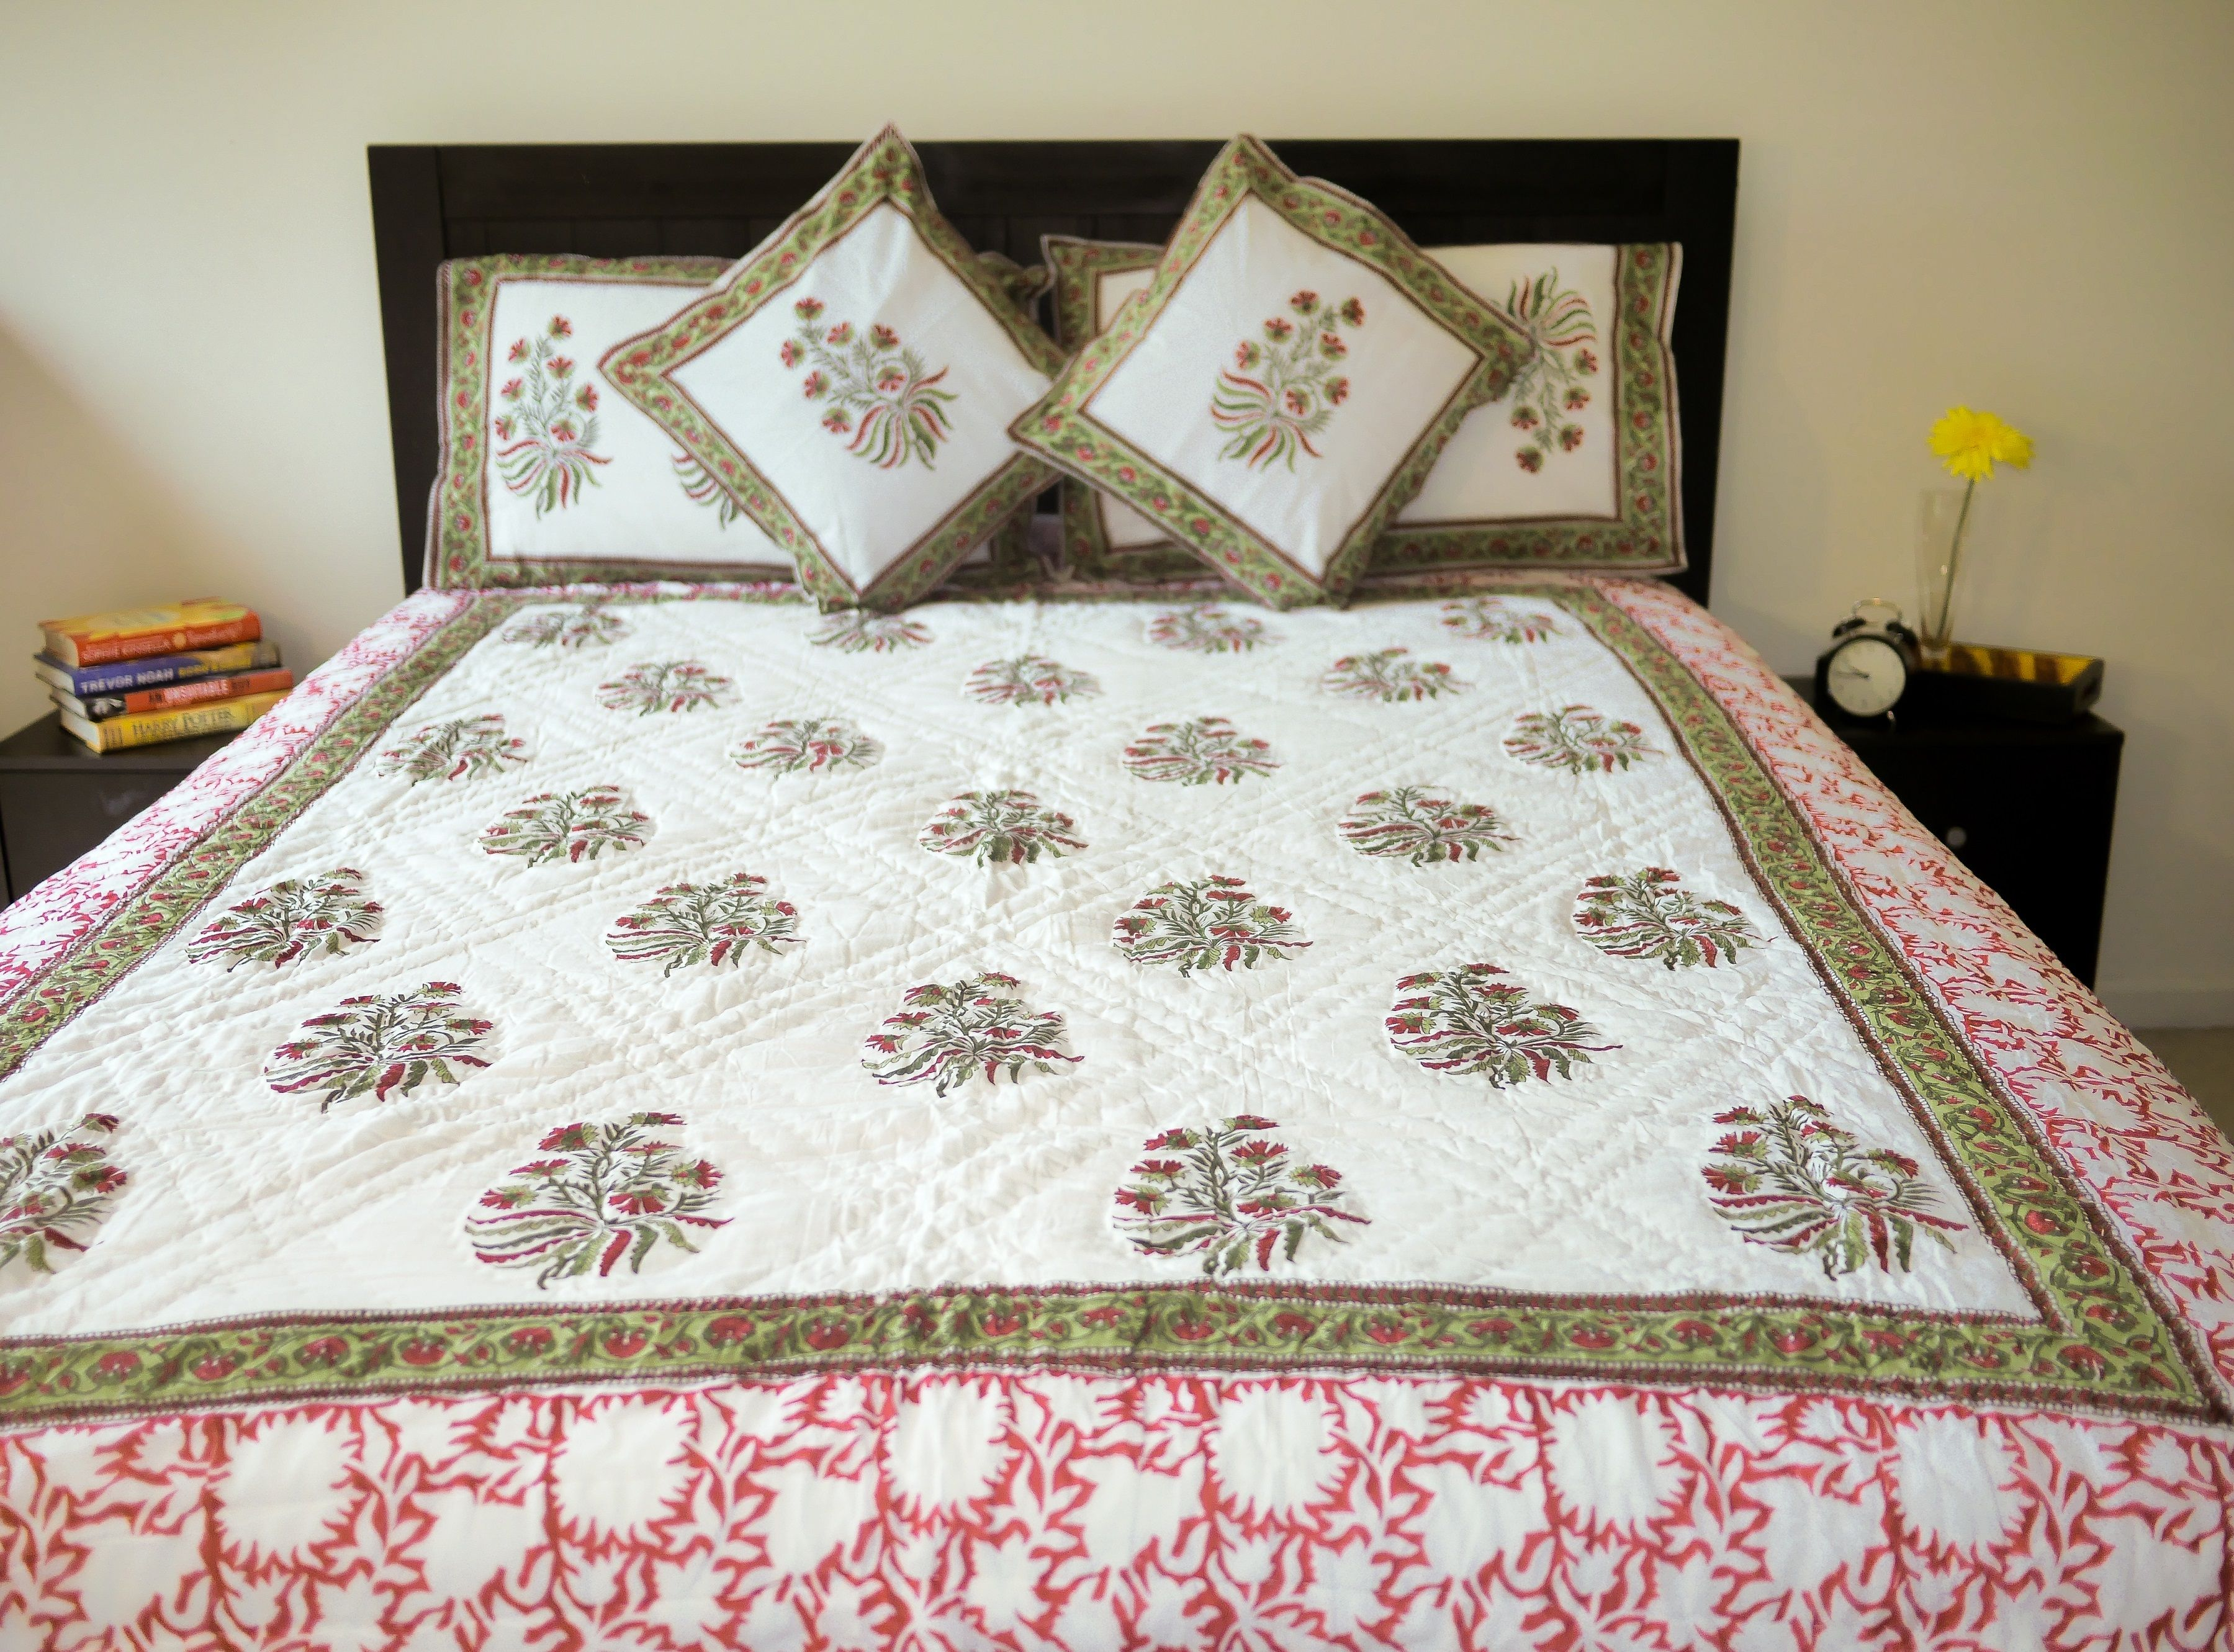 Ordinaire White And Pink Floral Motifs Hand Block Printed Cotton Muslin Quilt,Cotton  Blanket,Jaipuri Razai,bed Cover,bed Spread,comforter,duvet